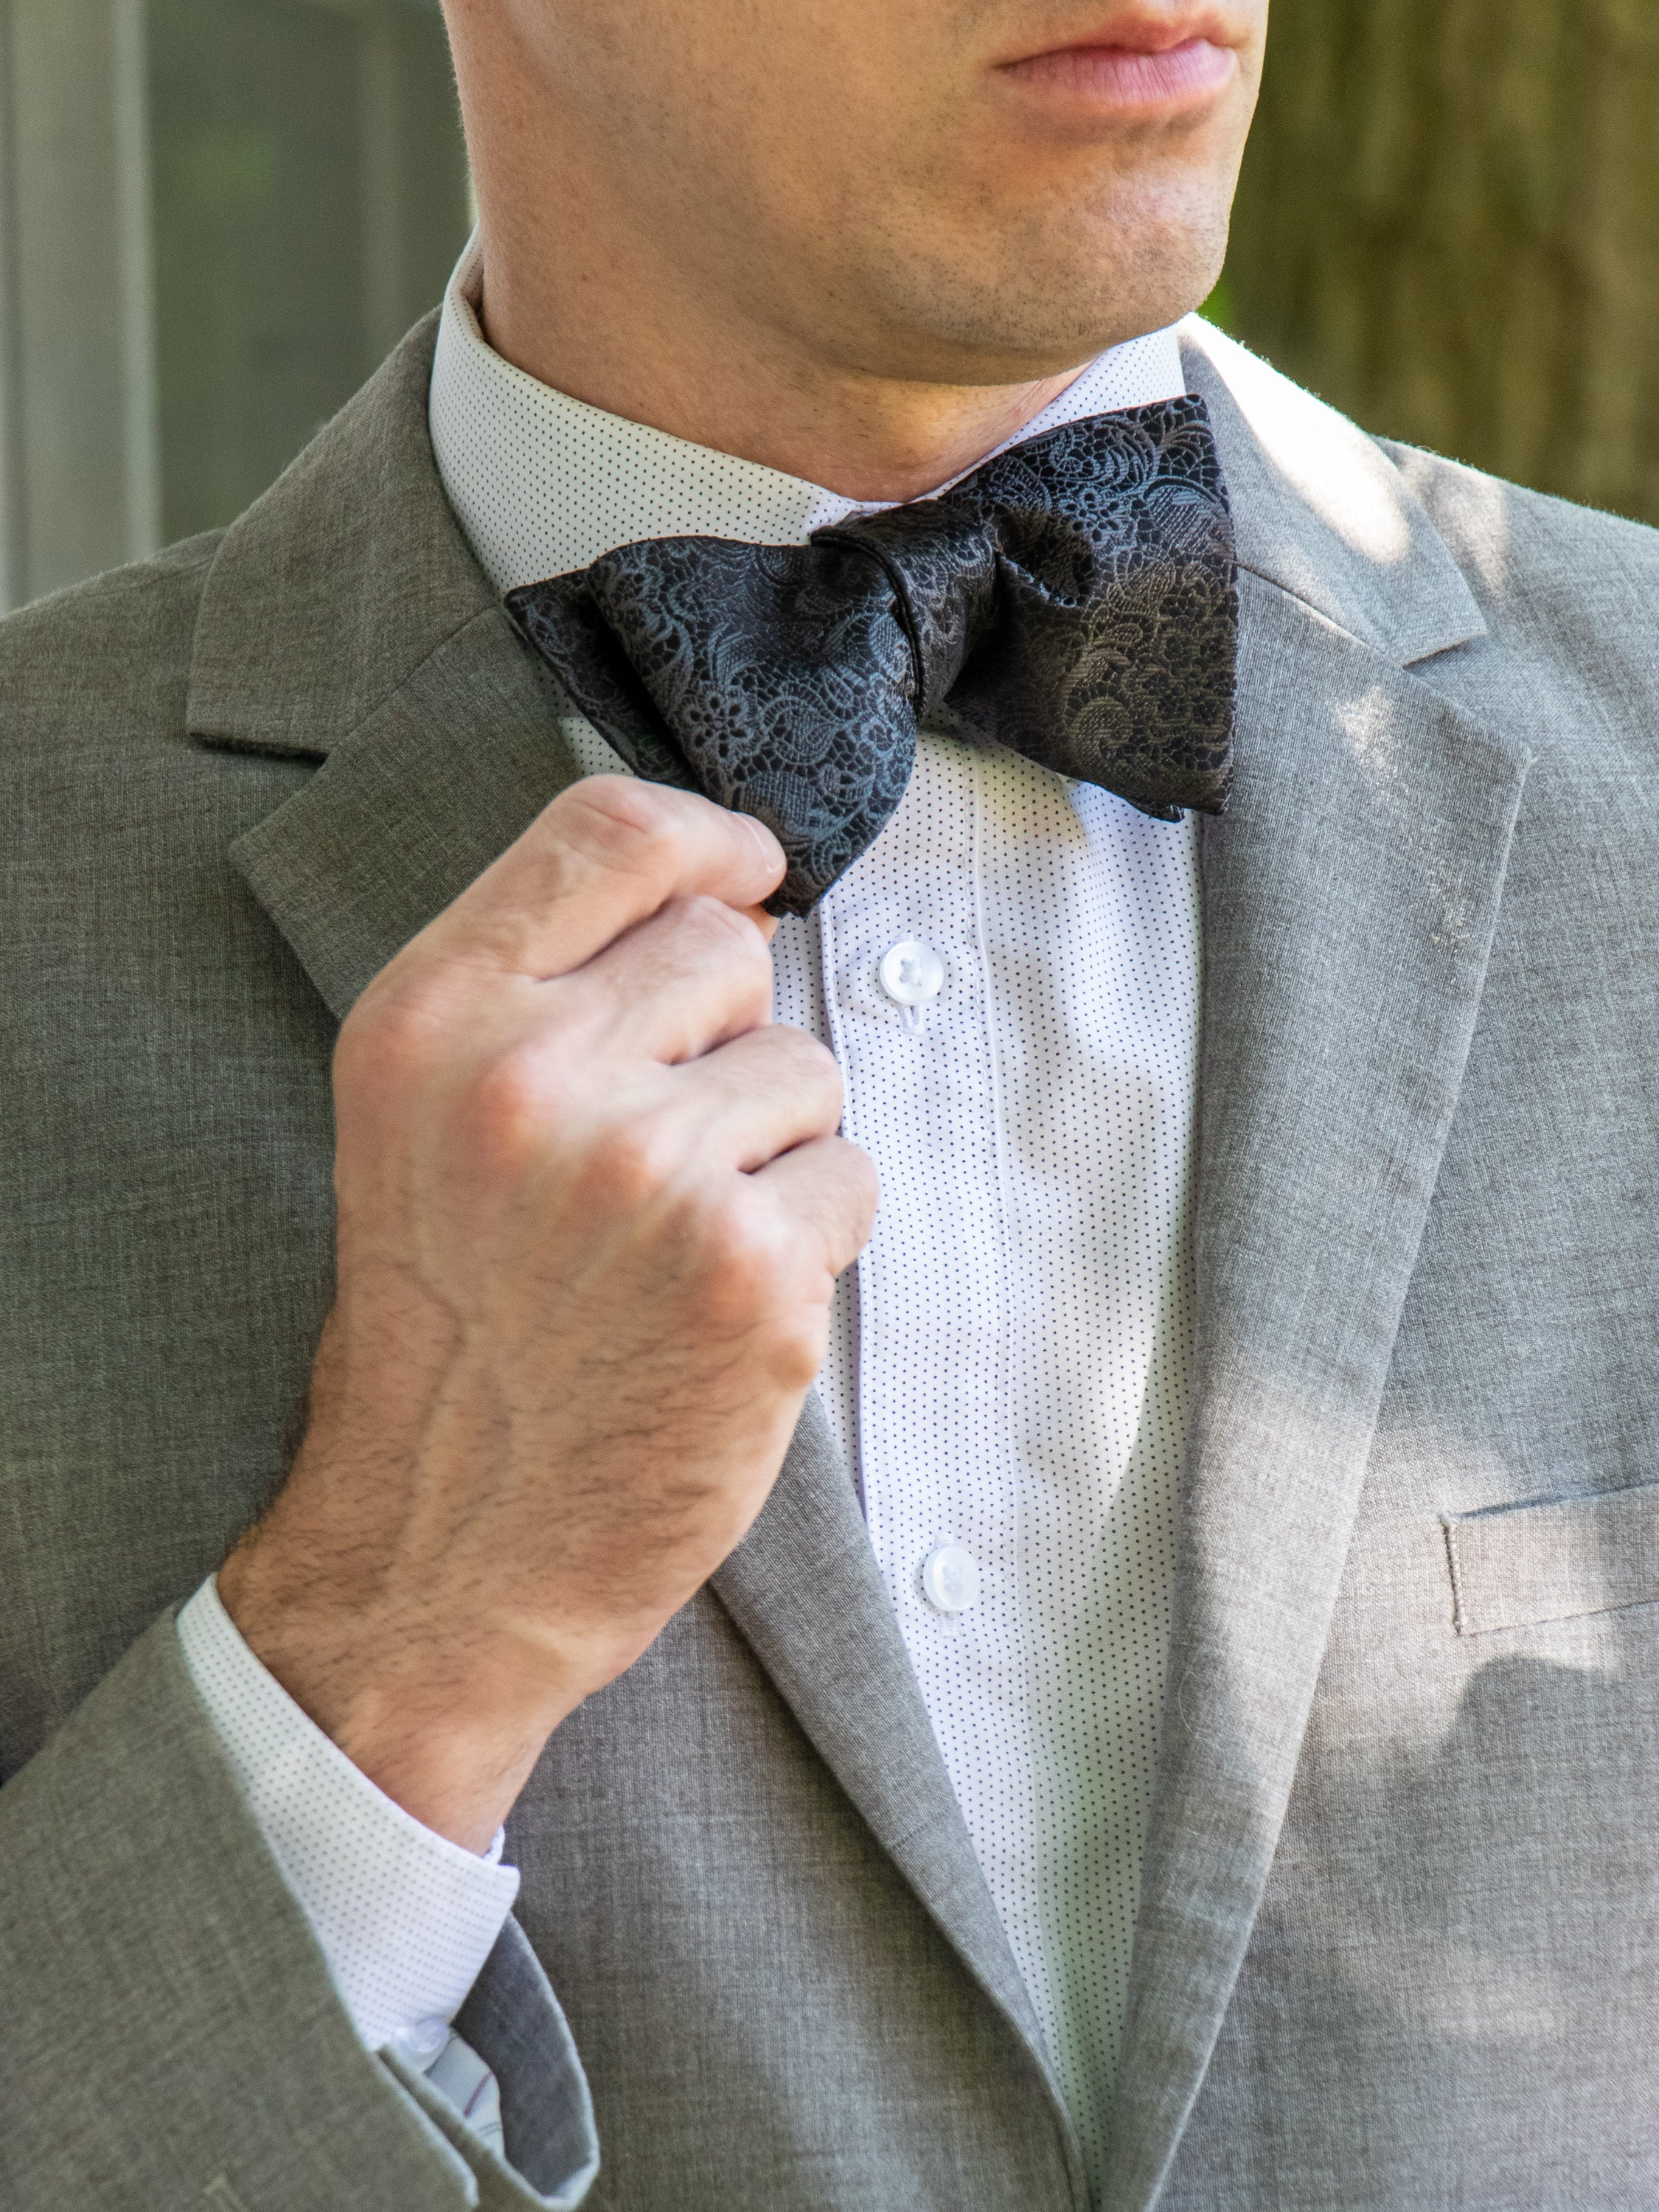 Details about  /New formal poly woven Men/'s Self-tied Bow Tie /& Hankie Set black brown paisley